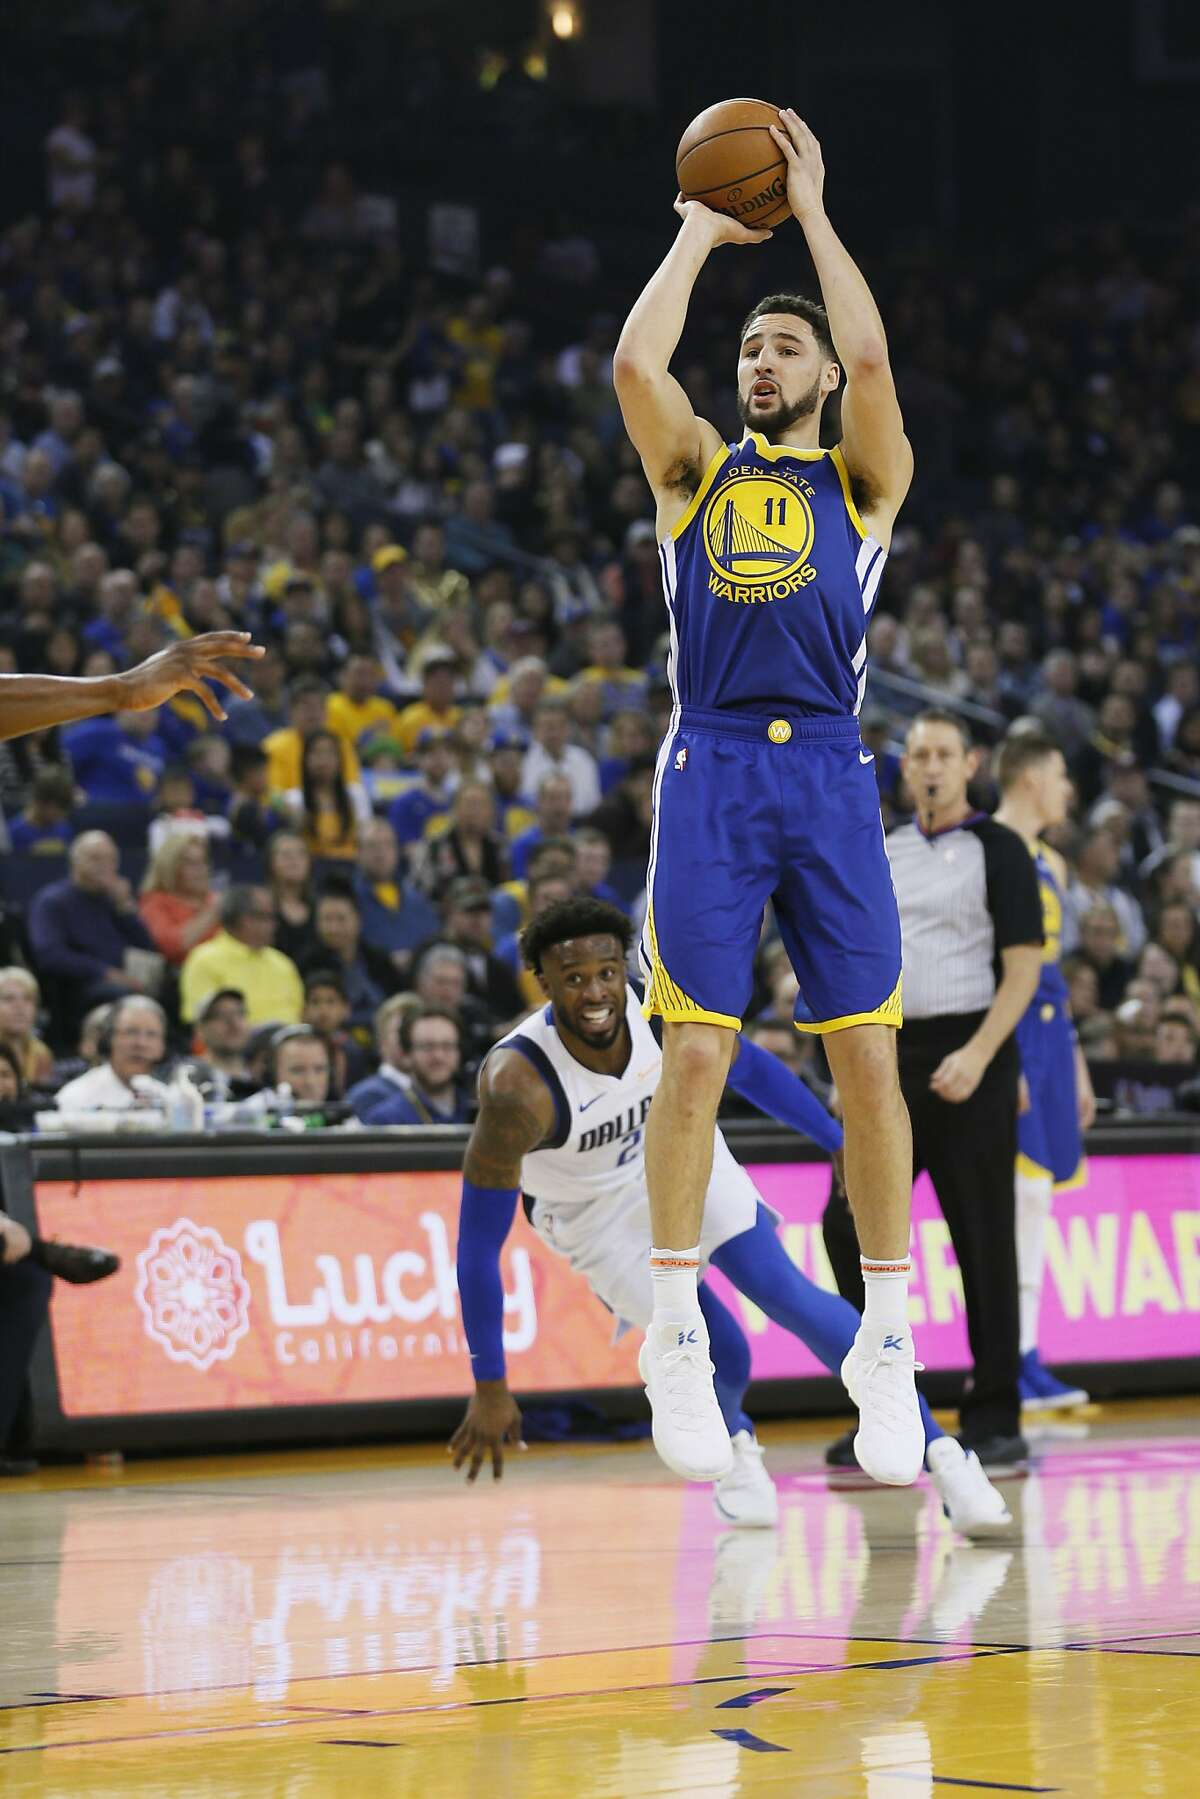 Golden State Warriors guard Klay Thompson (11) makes the jump shot against the Dallas Mavericks in the first half of an NBA game at Oracle Arena on Saturday, Dec. 22, 2018, in Oakland, Calif.